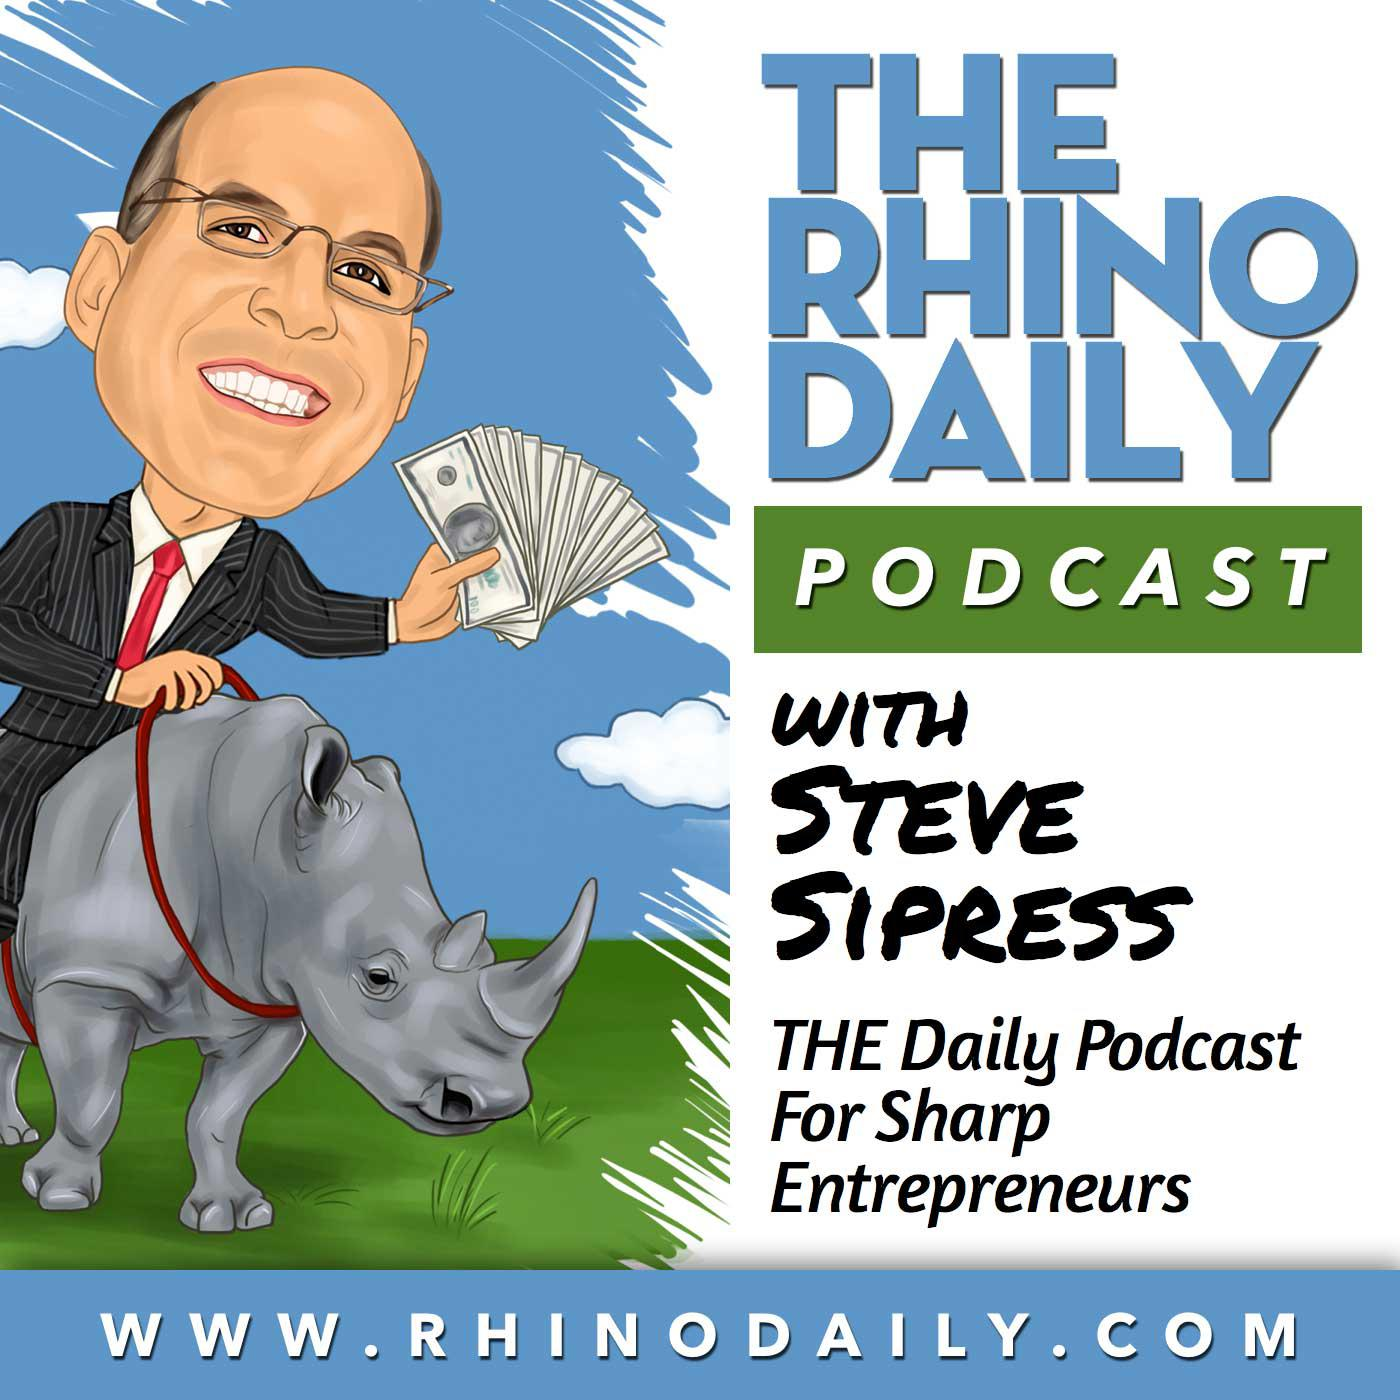 The Rhino Daily Podcast - Steve Sipress | Listen Notes